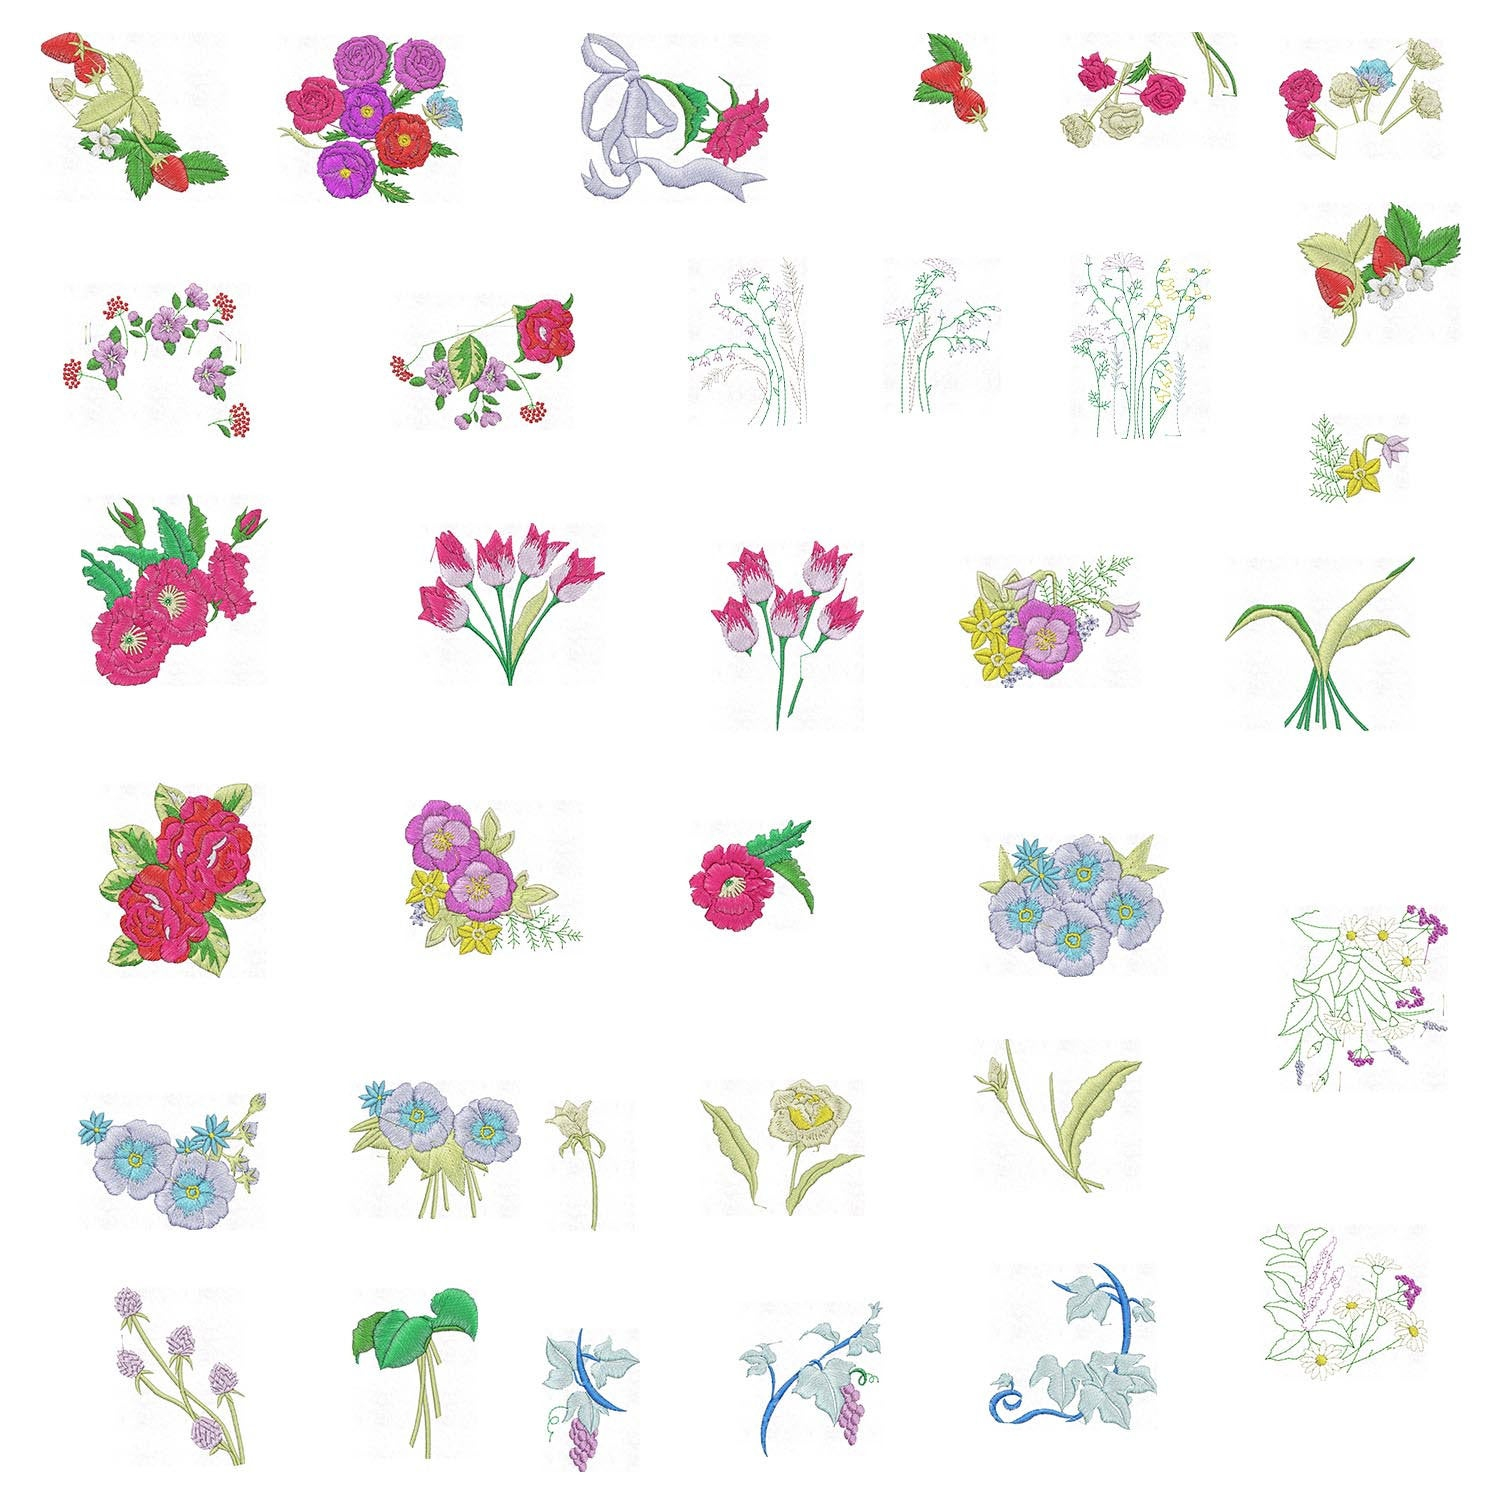 Patterns For Embroidery Machine Large Floral Patterns Memory Card Design Embroidery Machine Instant Download